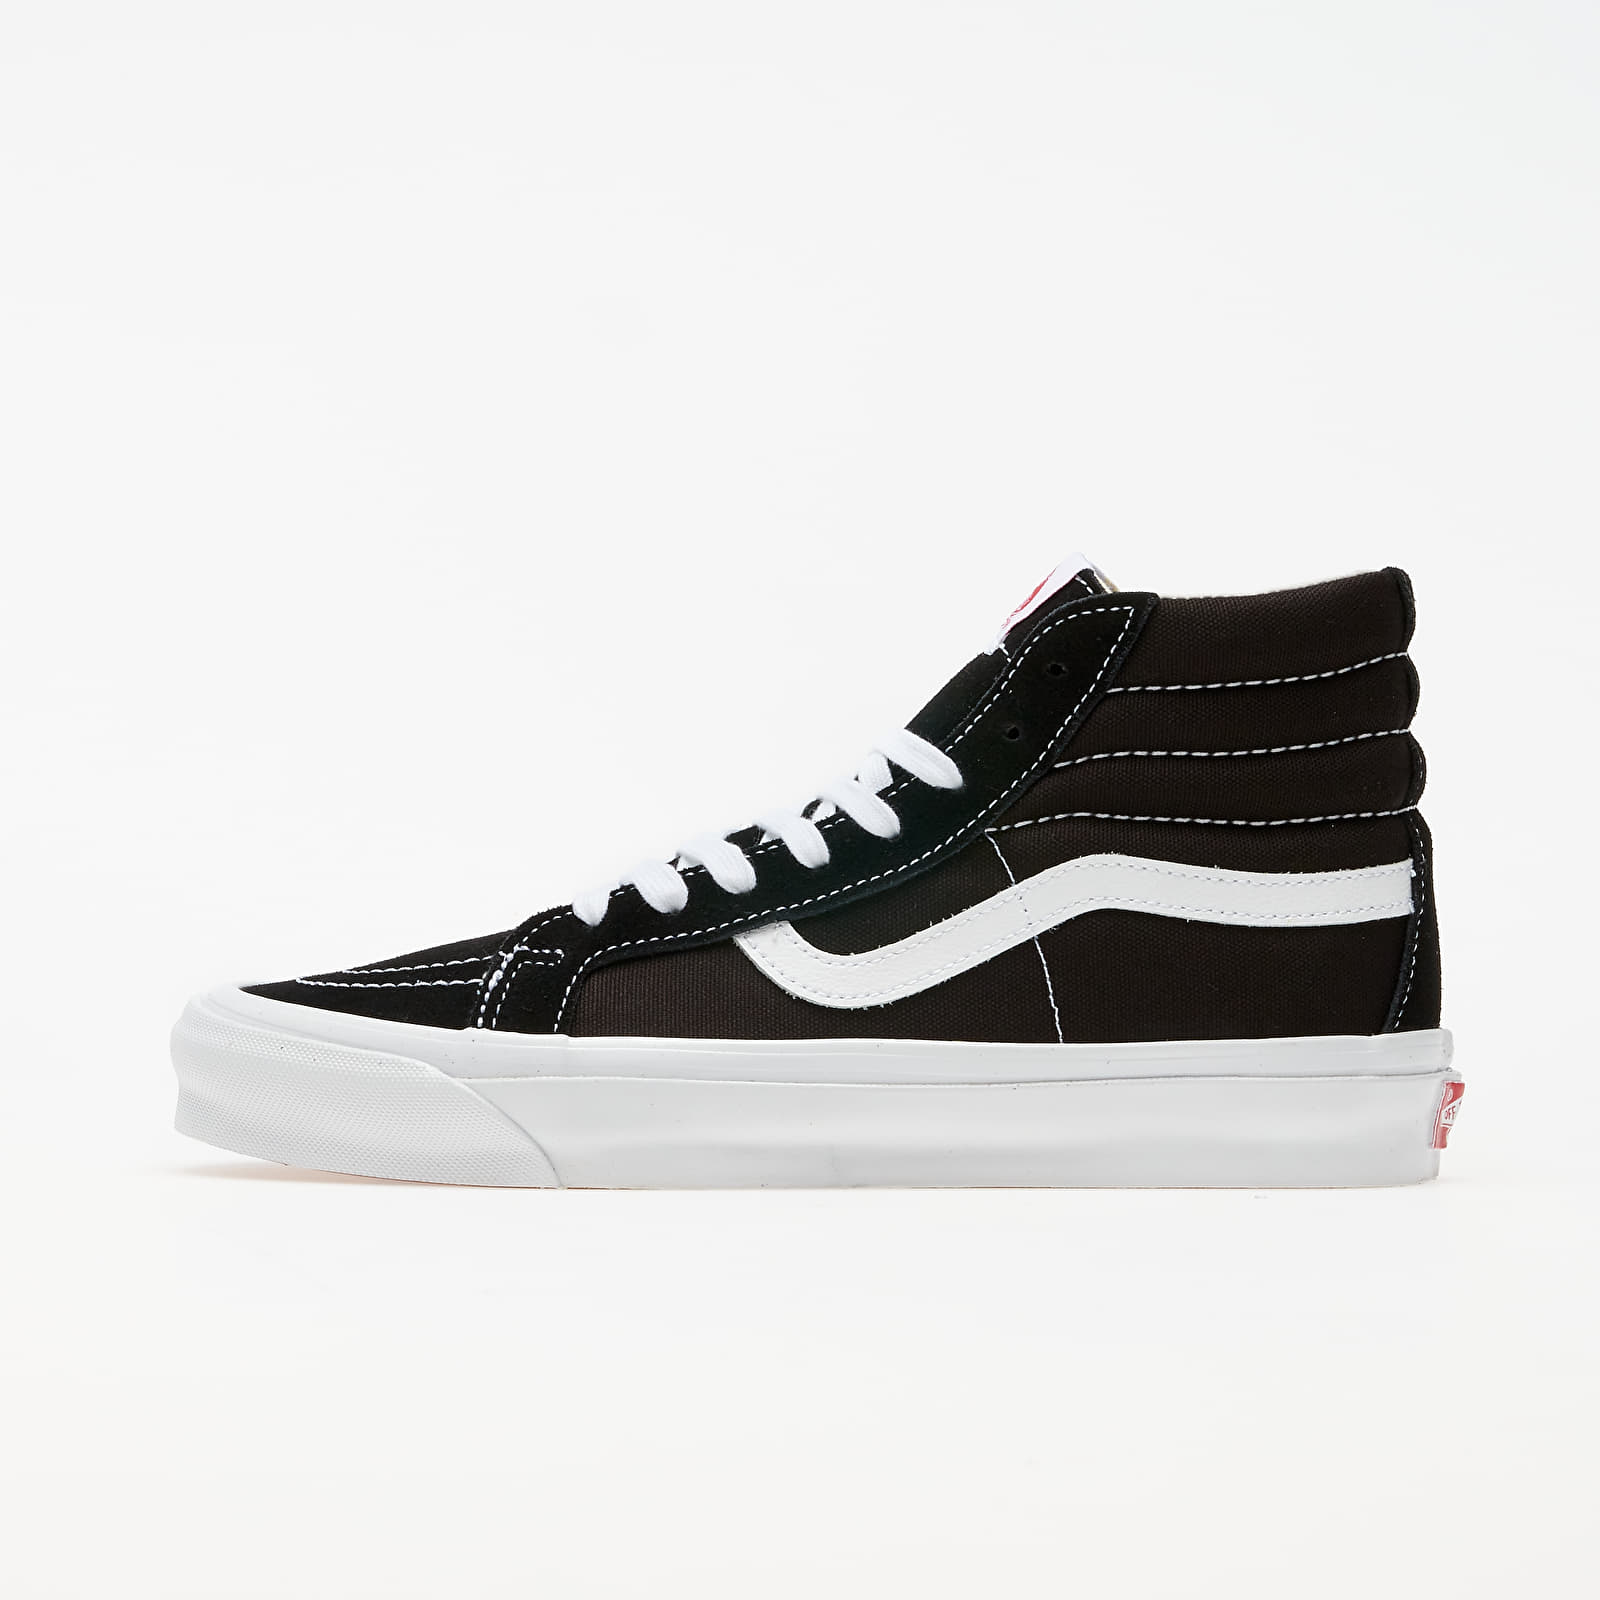 Ανδρικά παπούτσια Vans OG Sk8-Hi LX (Suede/ Canvas) Black/ True White